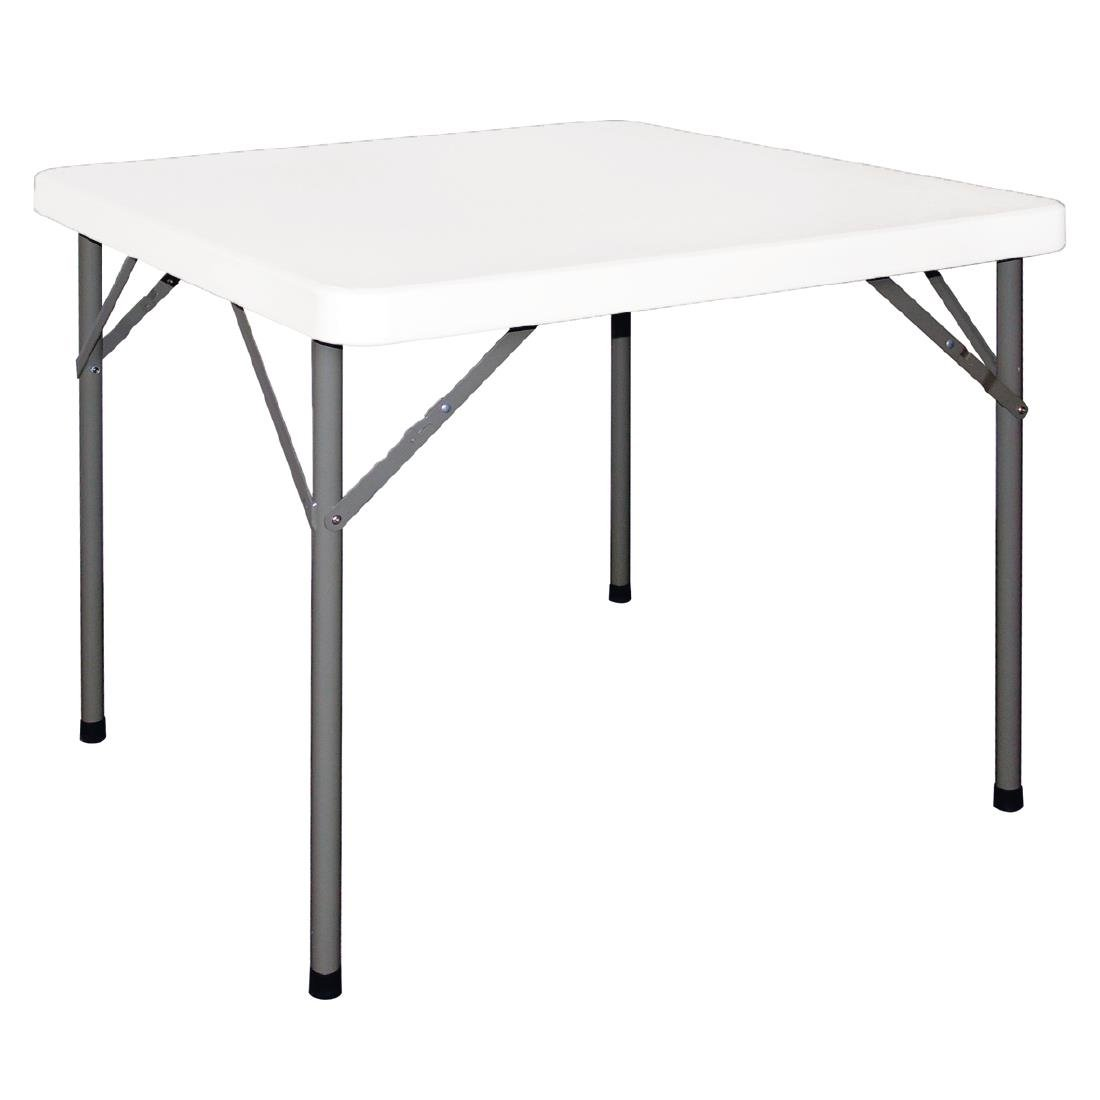 Genial Bolero Square Table   880x880x745mm Bolero Square Table   880x880x745mm